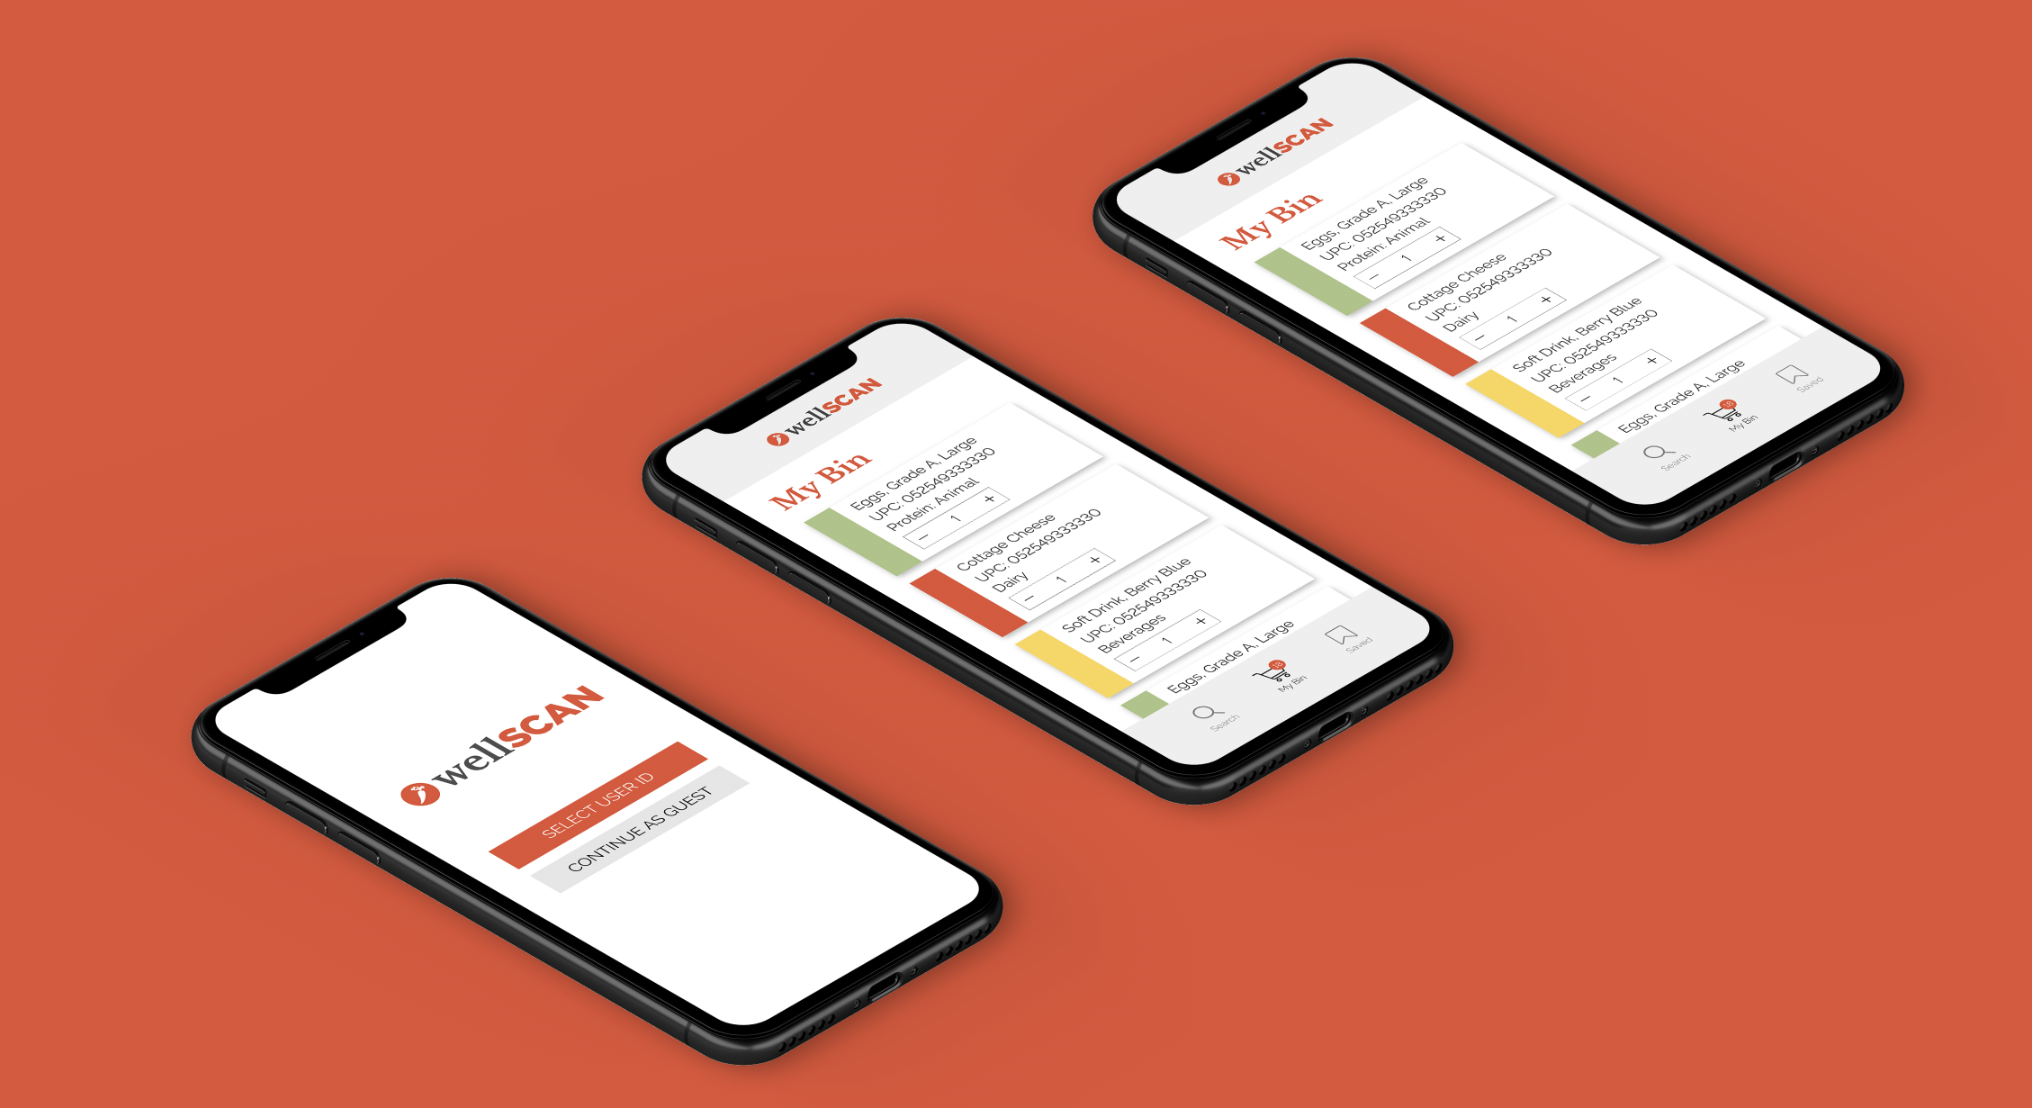 WellScan web/mobile application for food banks